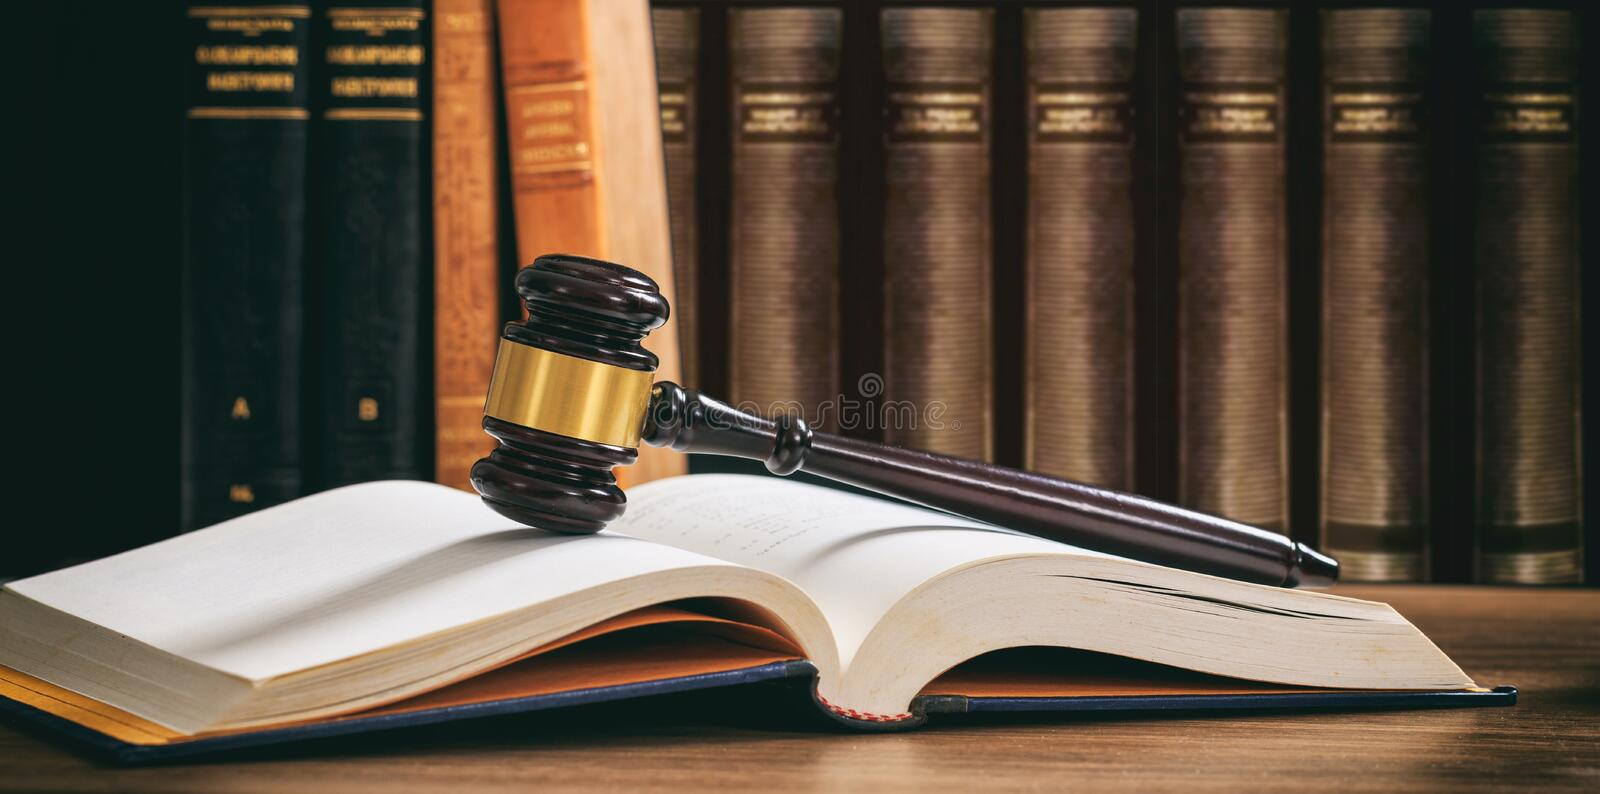 Judge gavel on an open book, wooden desk, law books background royalty free stock image